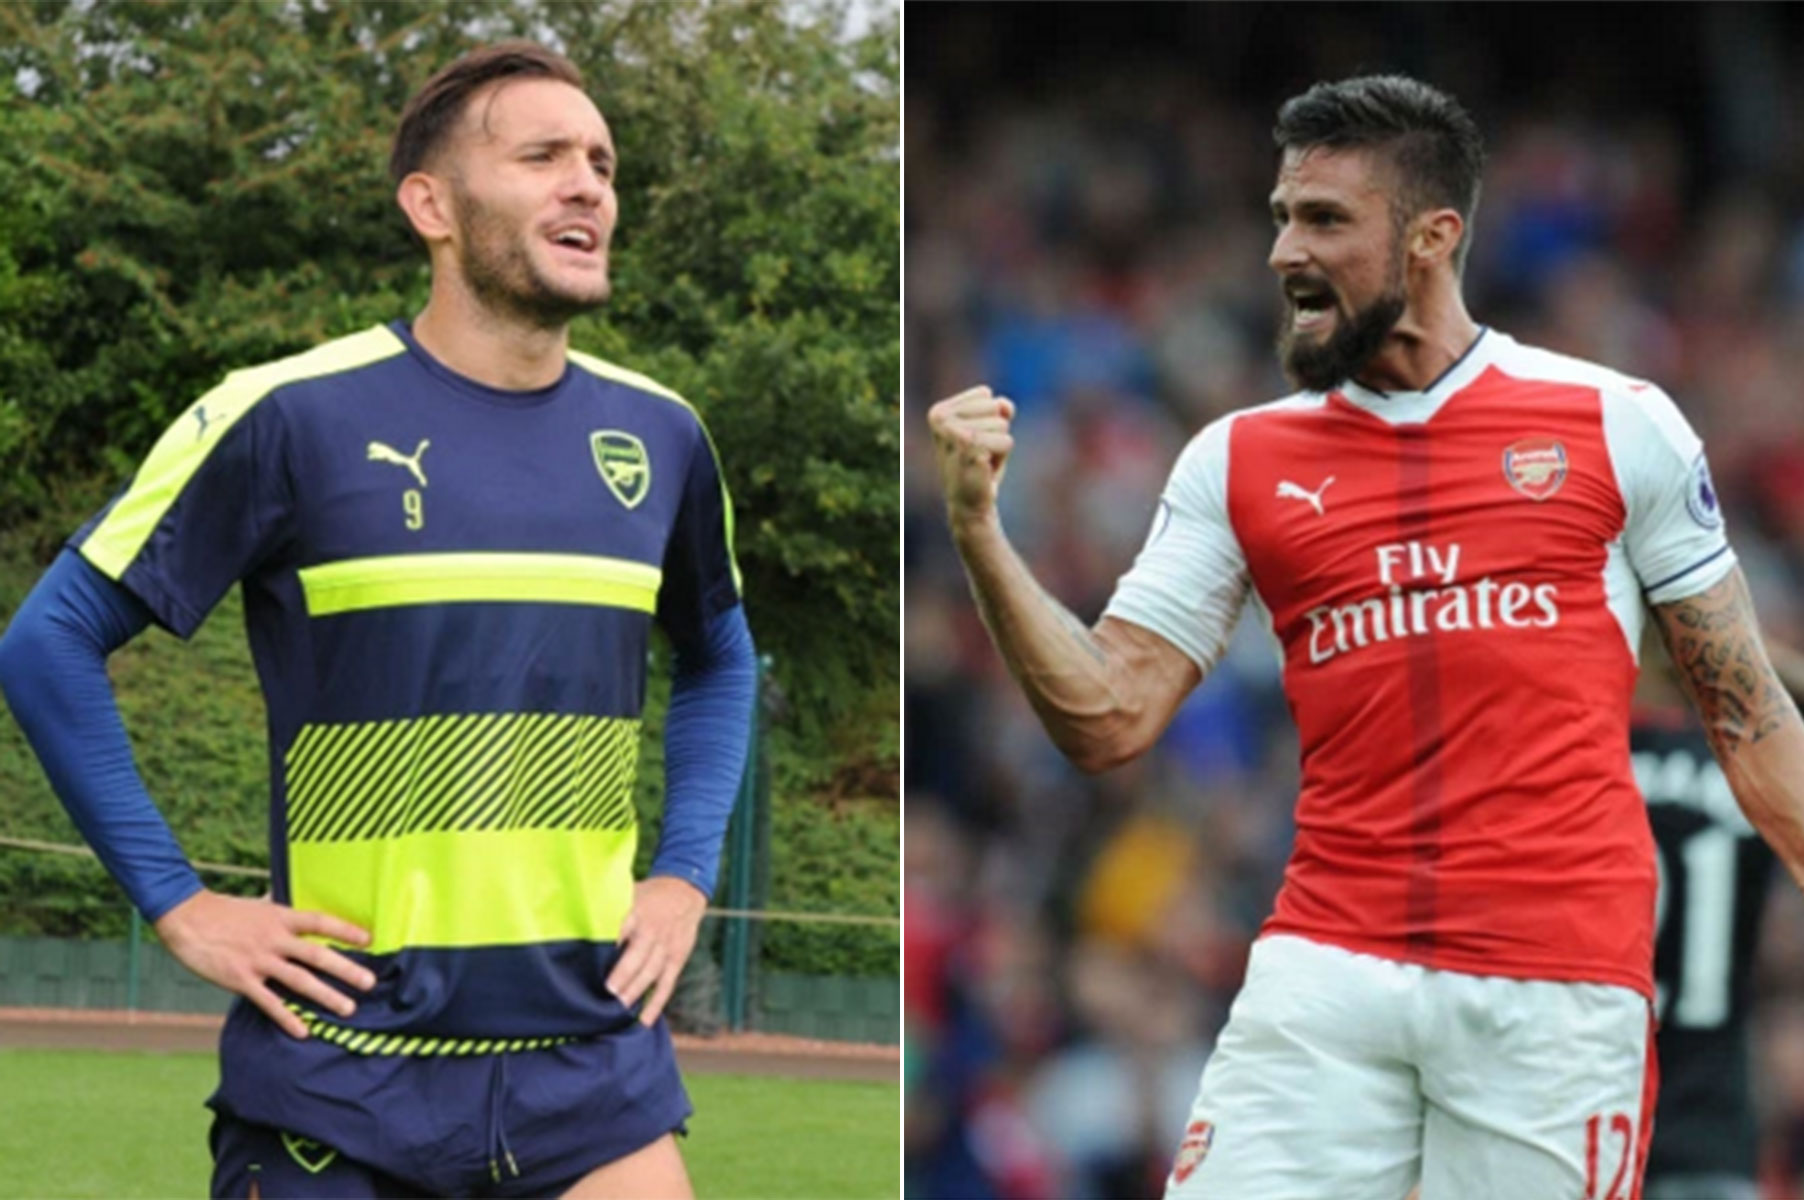 Jamie Vardy much better than Olivier Giroud and Lucas Perez and would have walked into the Arsenal side, says Gary Lineker